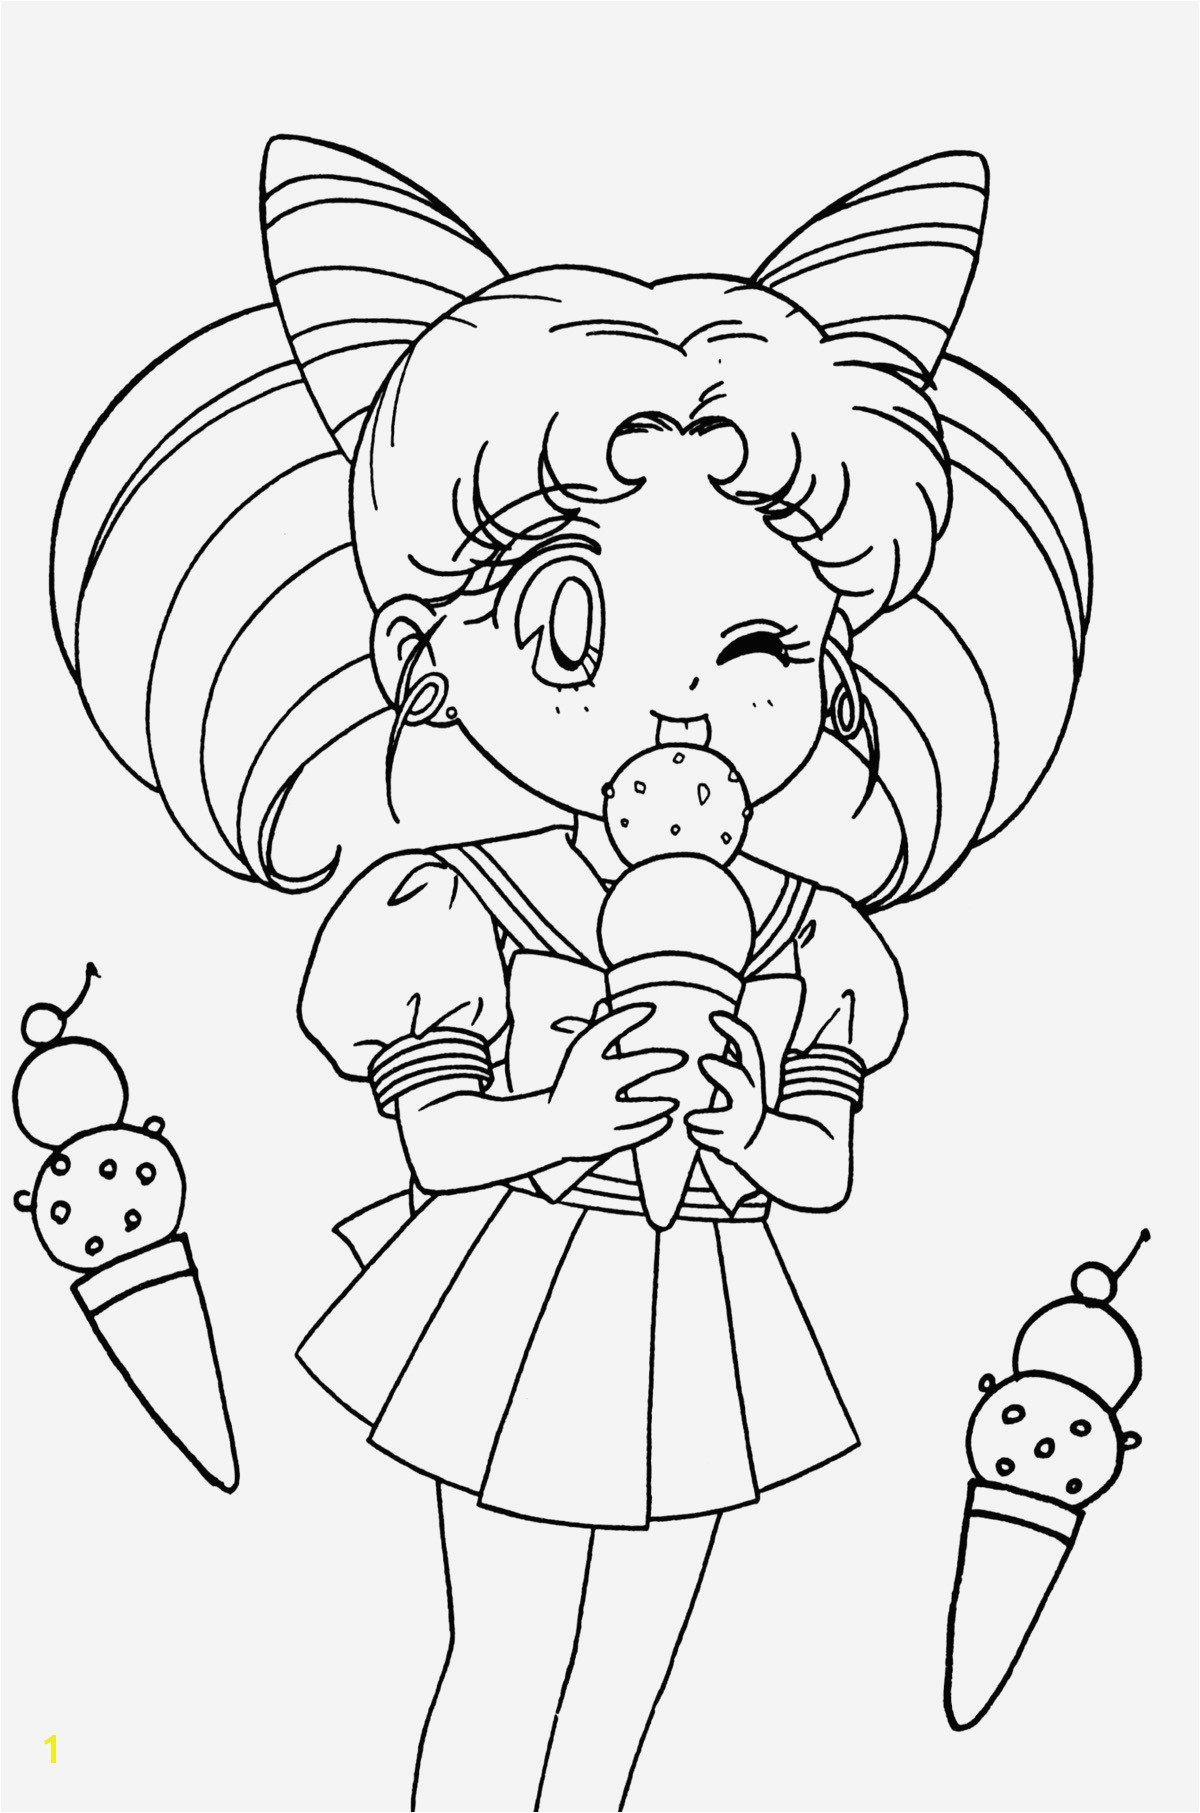 Anime Sailor Moon Coloring Pages New Anime Coloring Pages Line Unique Sailor Moon Coloring Pages 3514